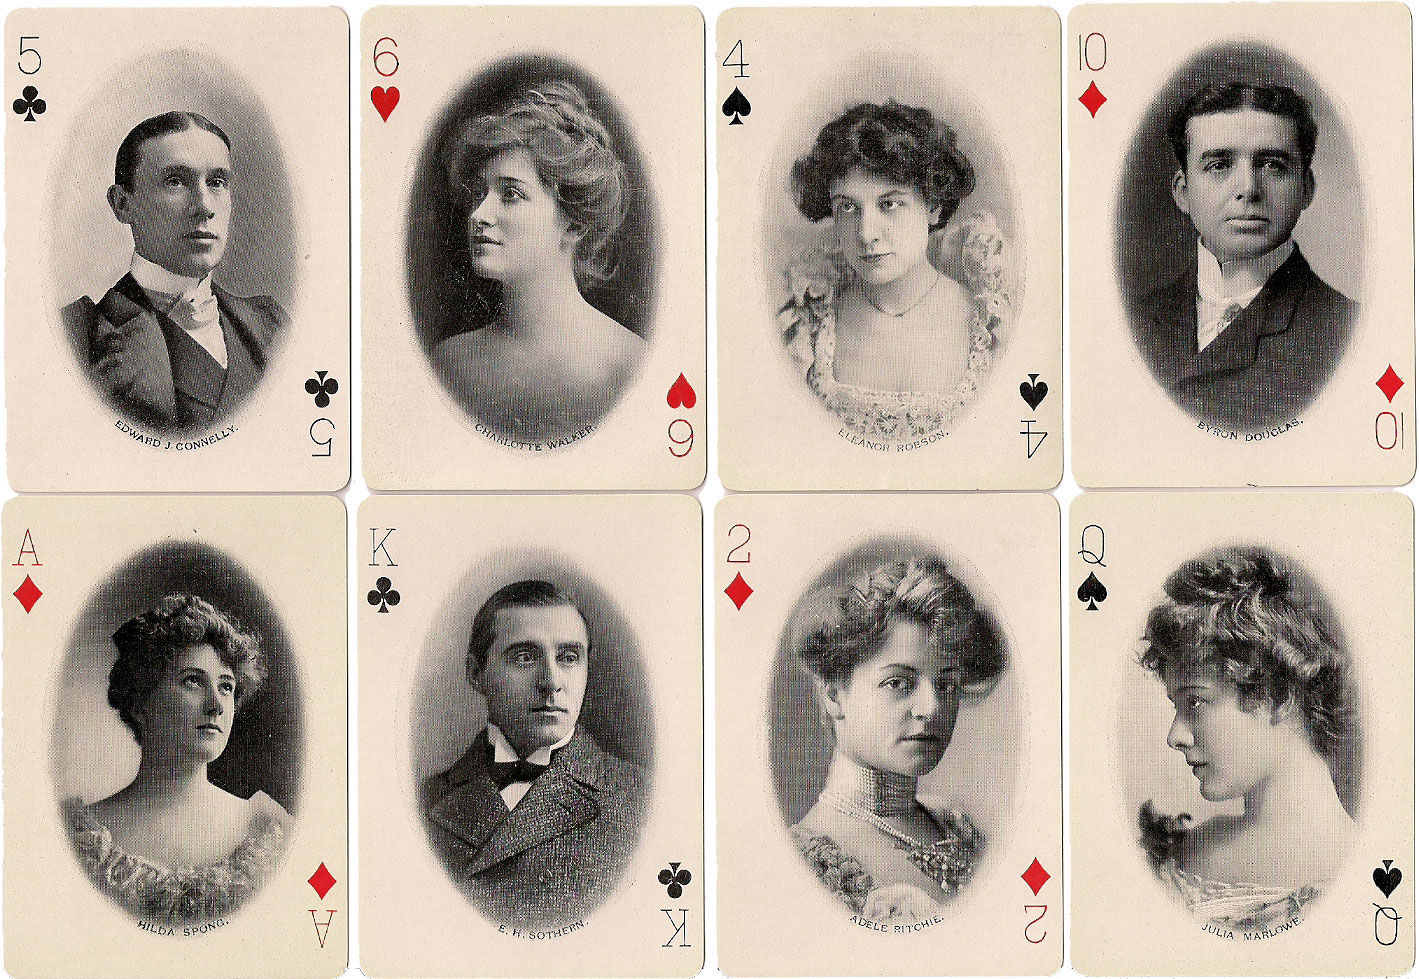 Craddock's Soap Theatrical playing cards, published in 1895 by the Eureka Soap Co., Cincinnati